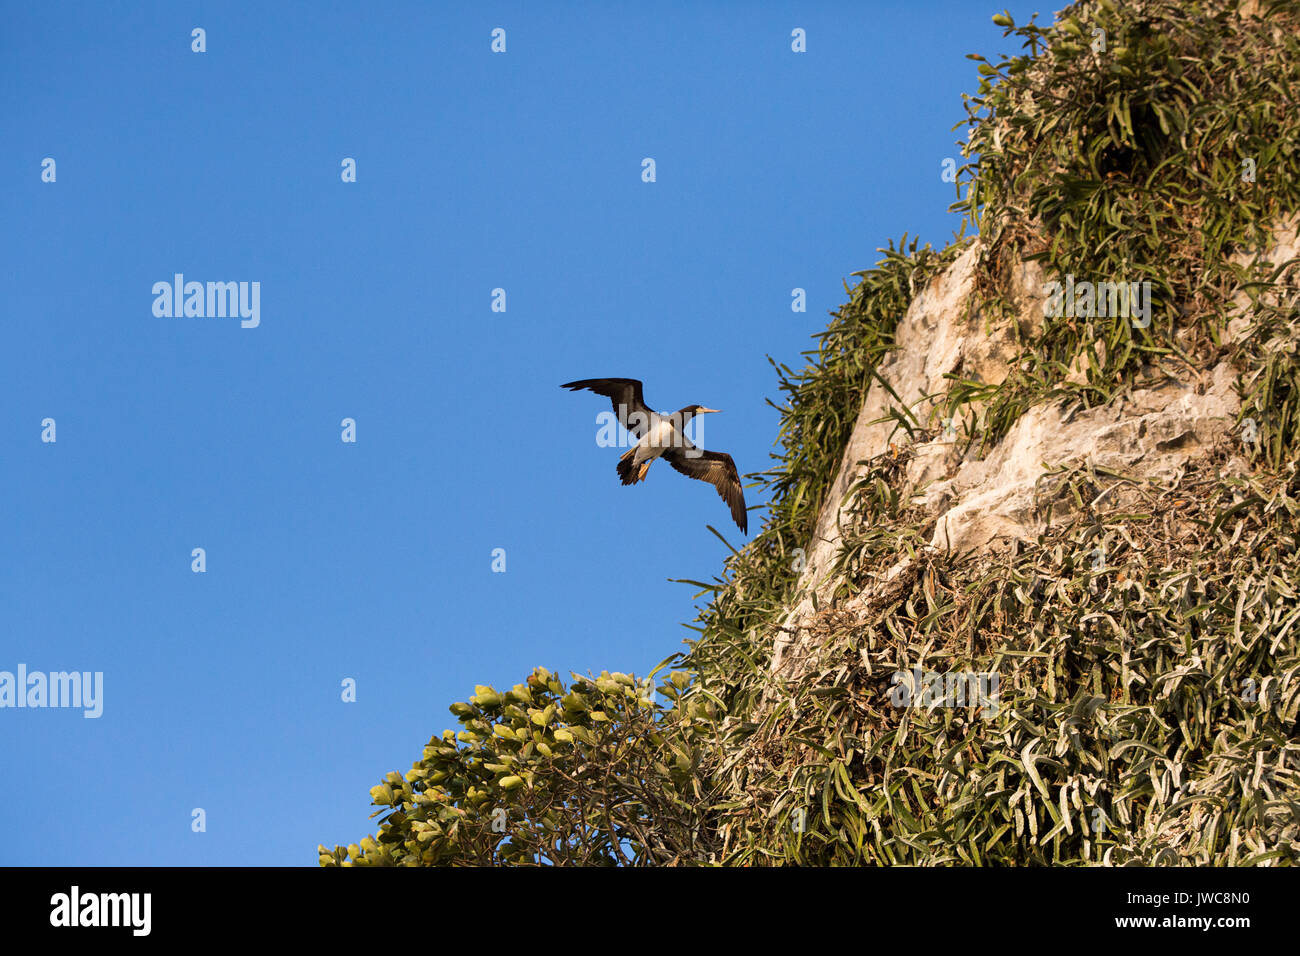 An adult brown boobie flies near a steep cliffside of Bona Island in the Gulf of Panama. - Stock Image